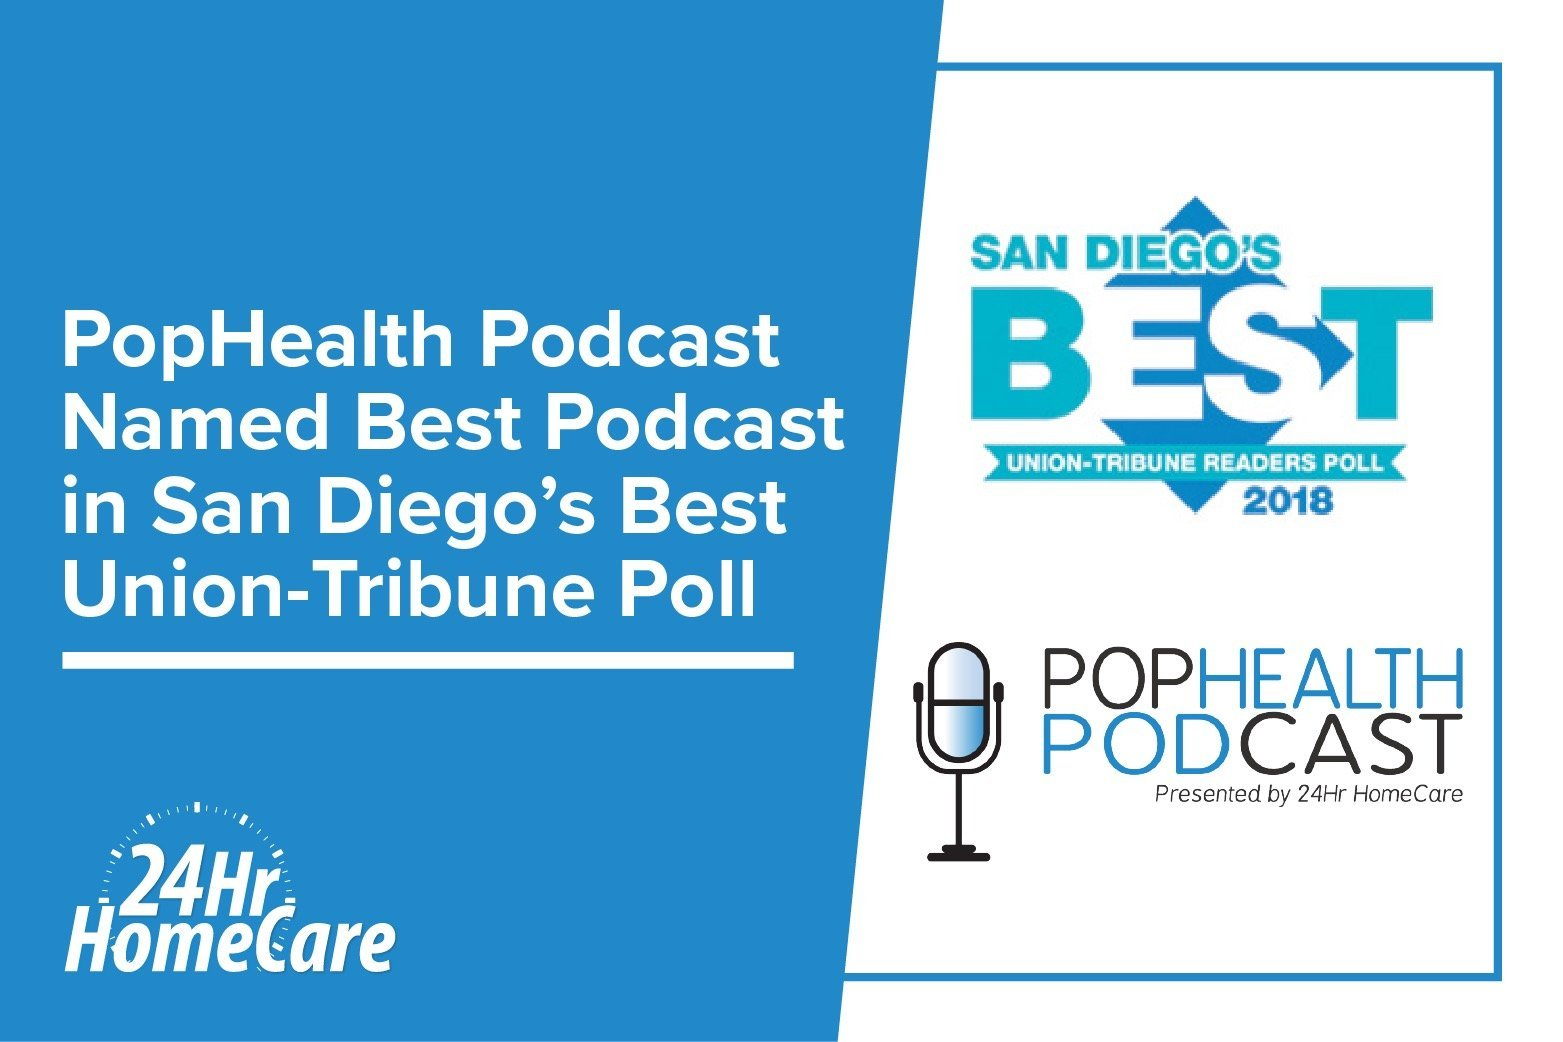 PopHealth Podcast Named Best Podcast in San Diego's Best Union-Tribune Readers Poll 2018